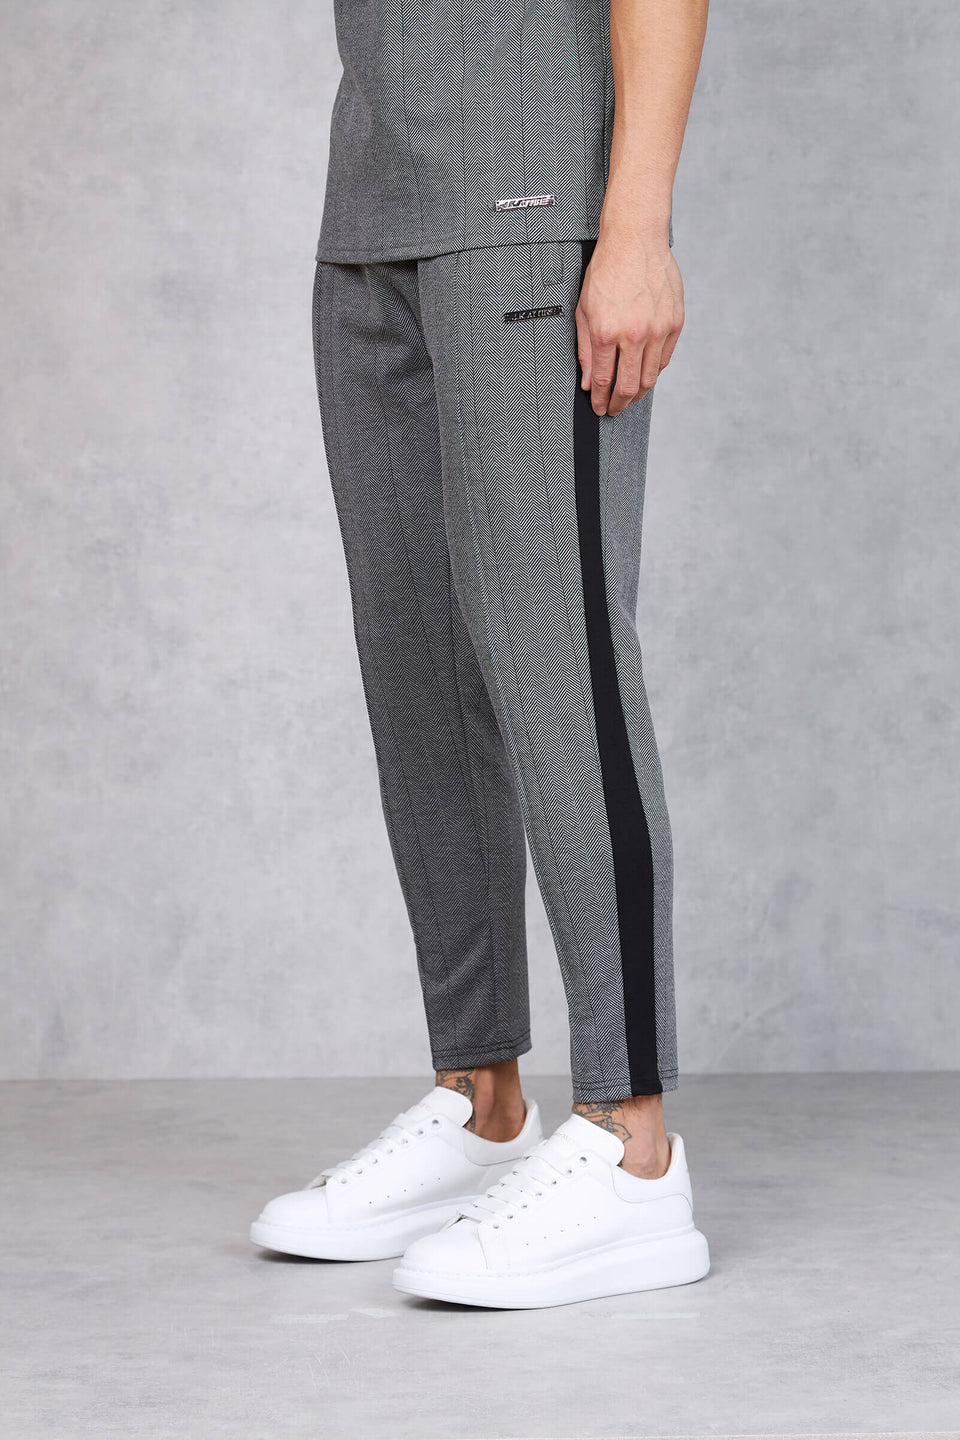 Soho Contrast Stripe Trouser - grey